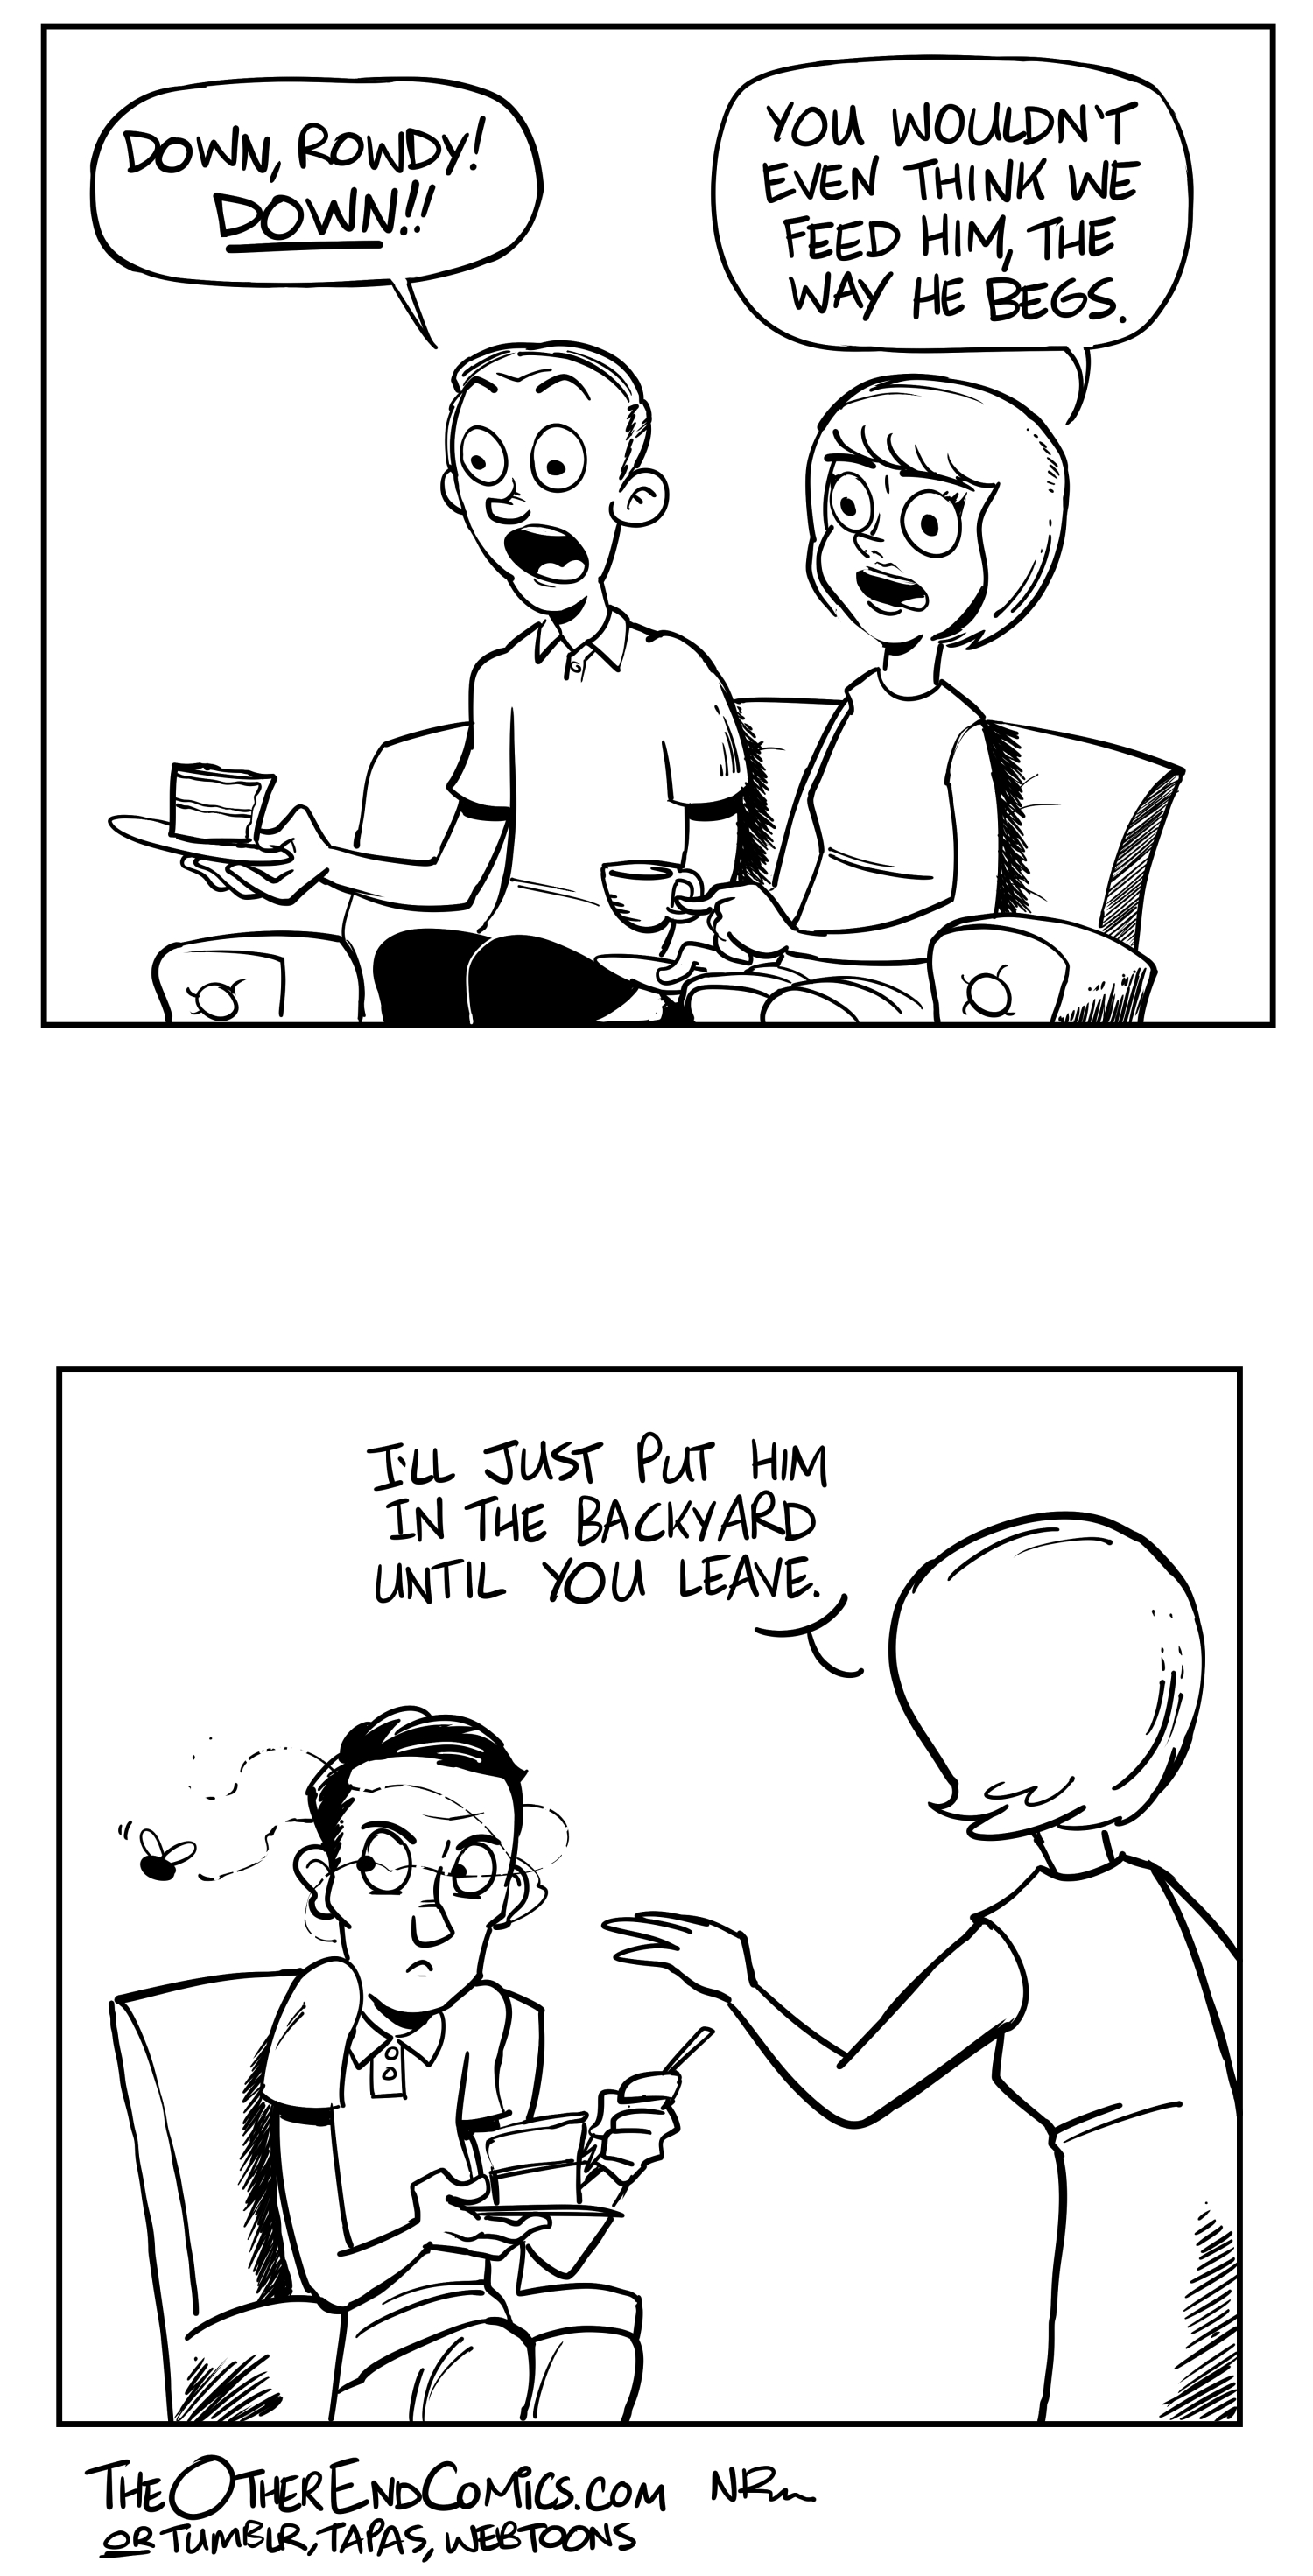 How is that lady even holding her teacup? This comic is so fake.